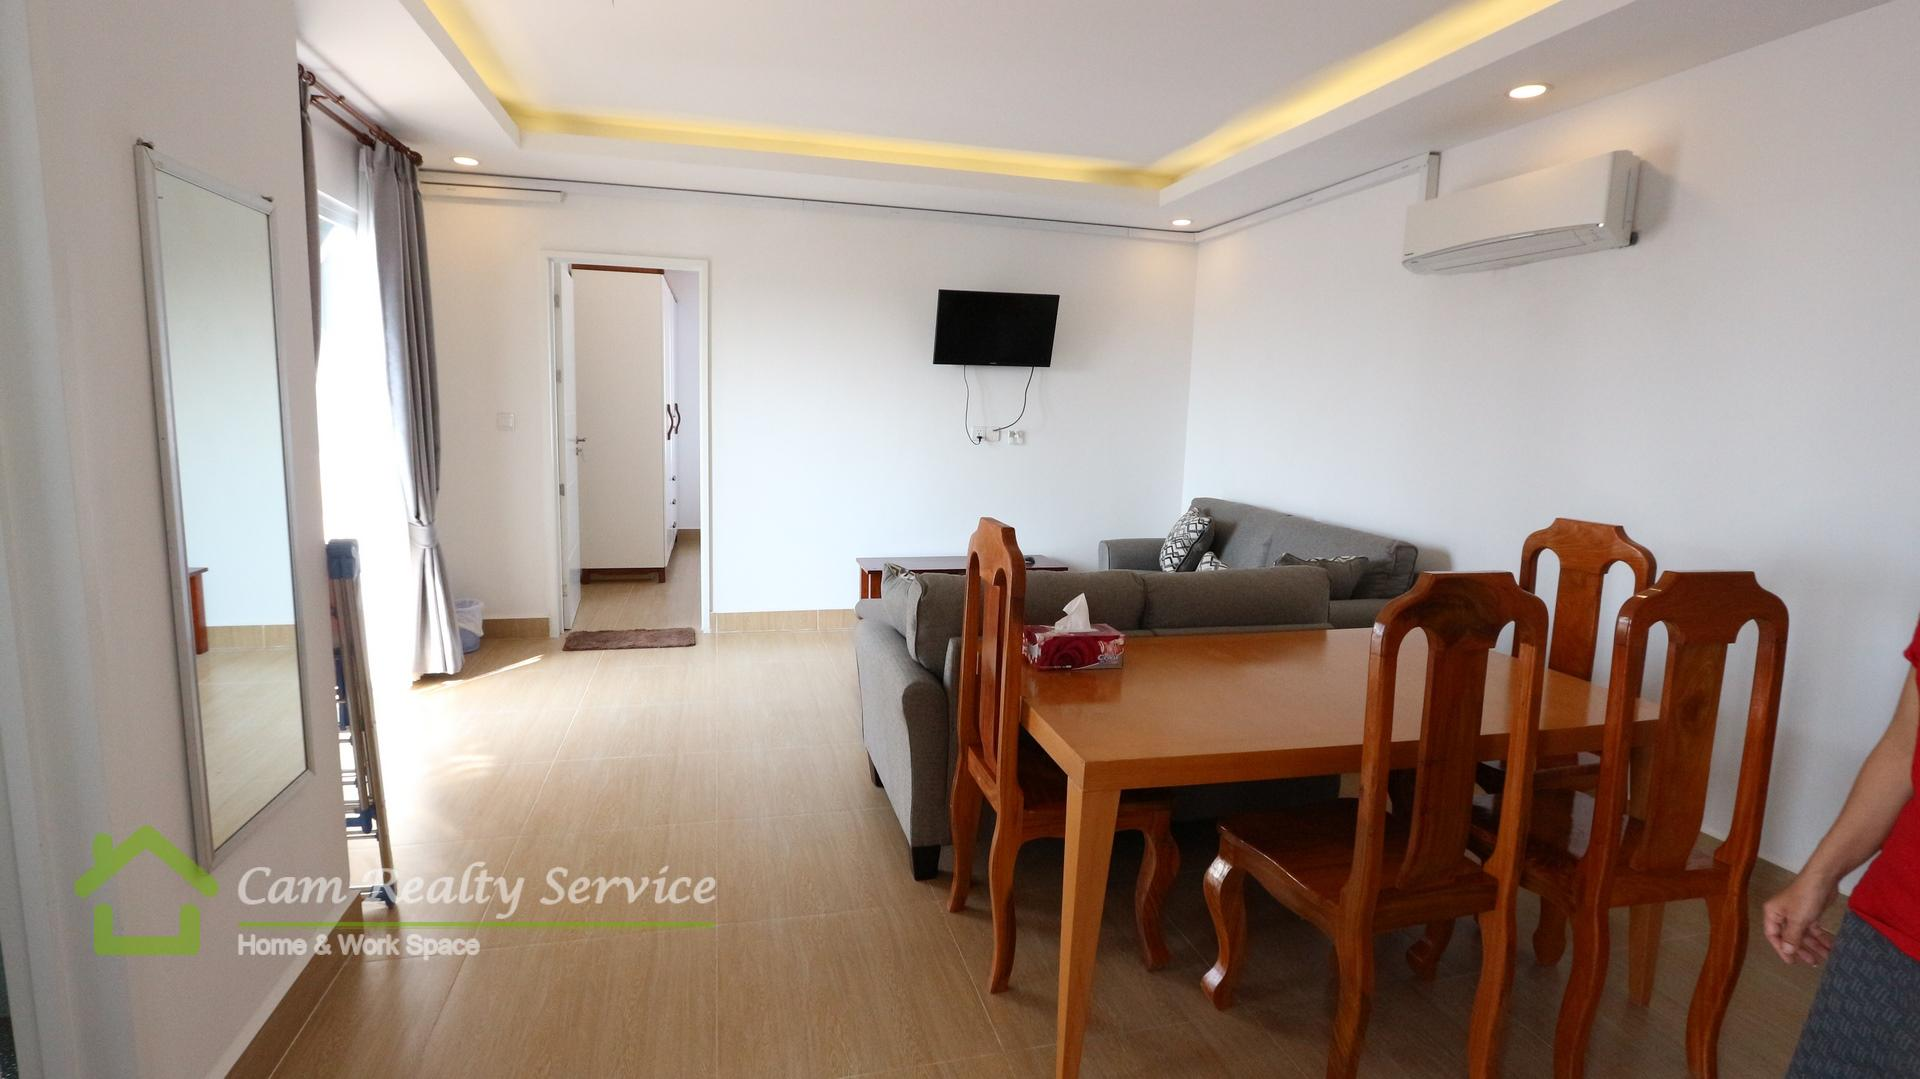 BKK3 area| Modern style 2 bedrooms apartment for rent| 800$/month| Pool & gym